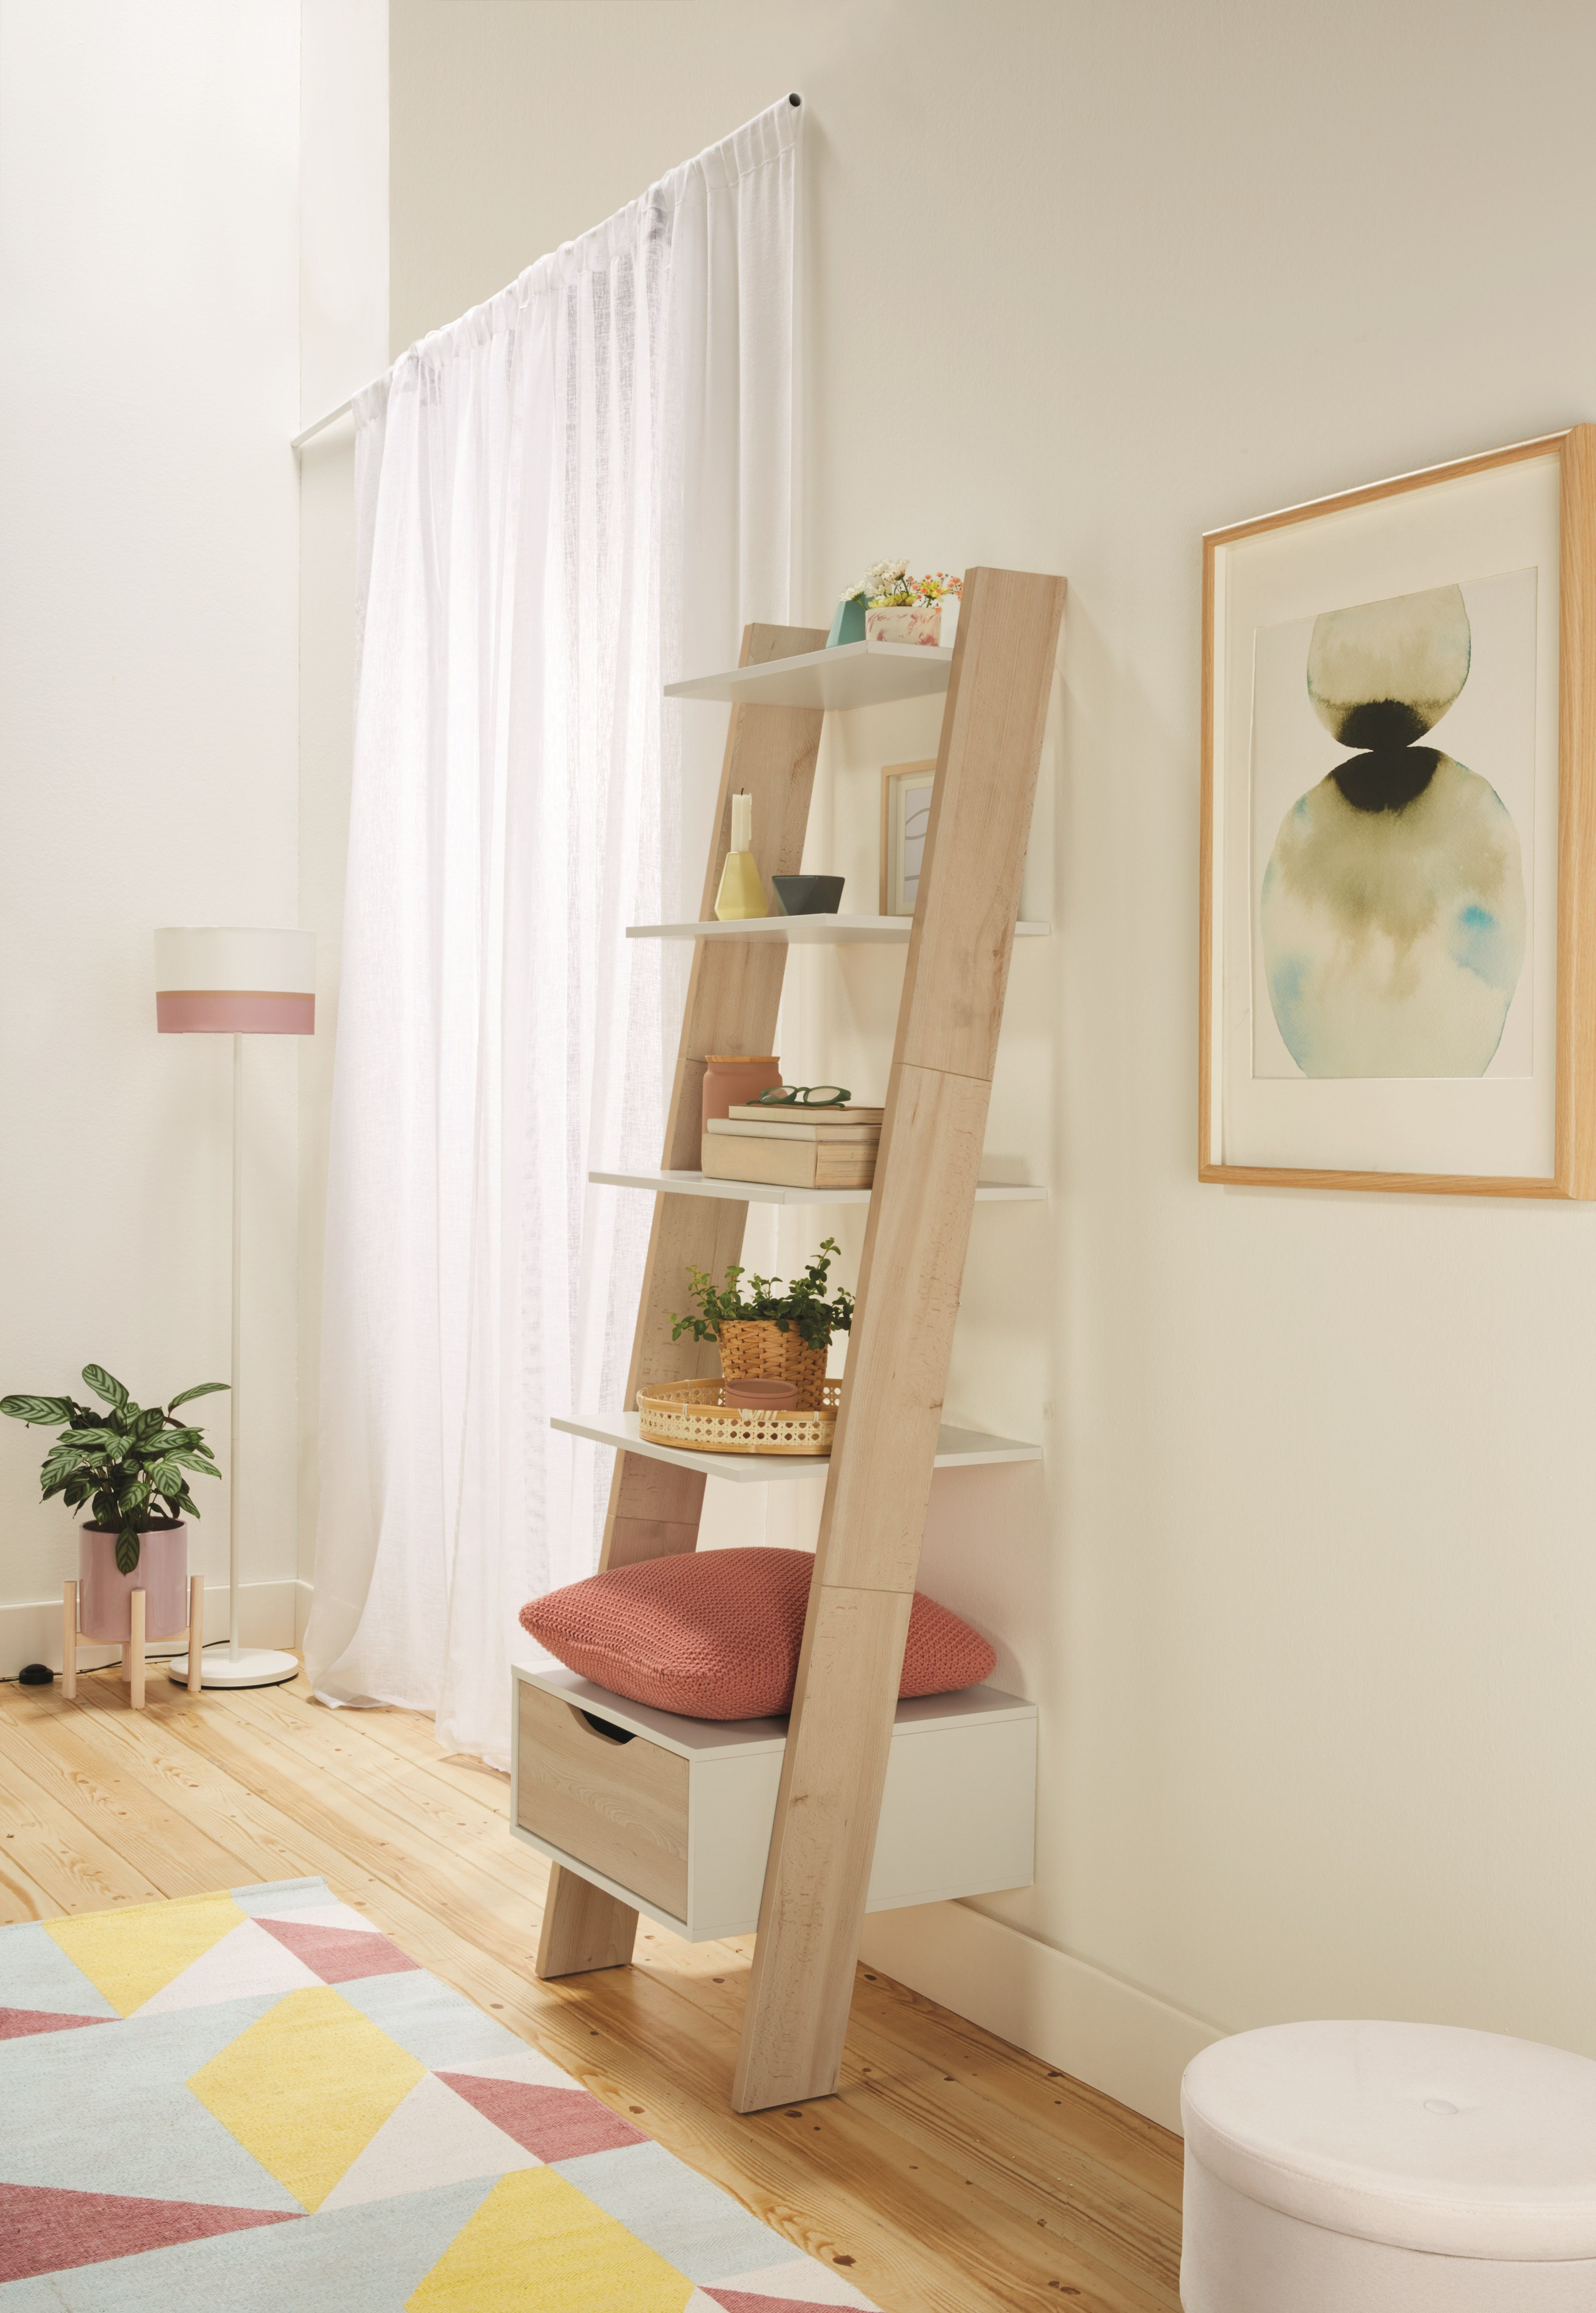 Lidl Is Selling A Ladder Shelving Unit For 50 Lidl Offers